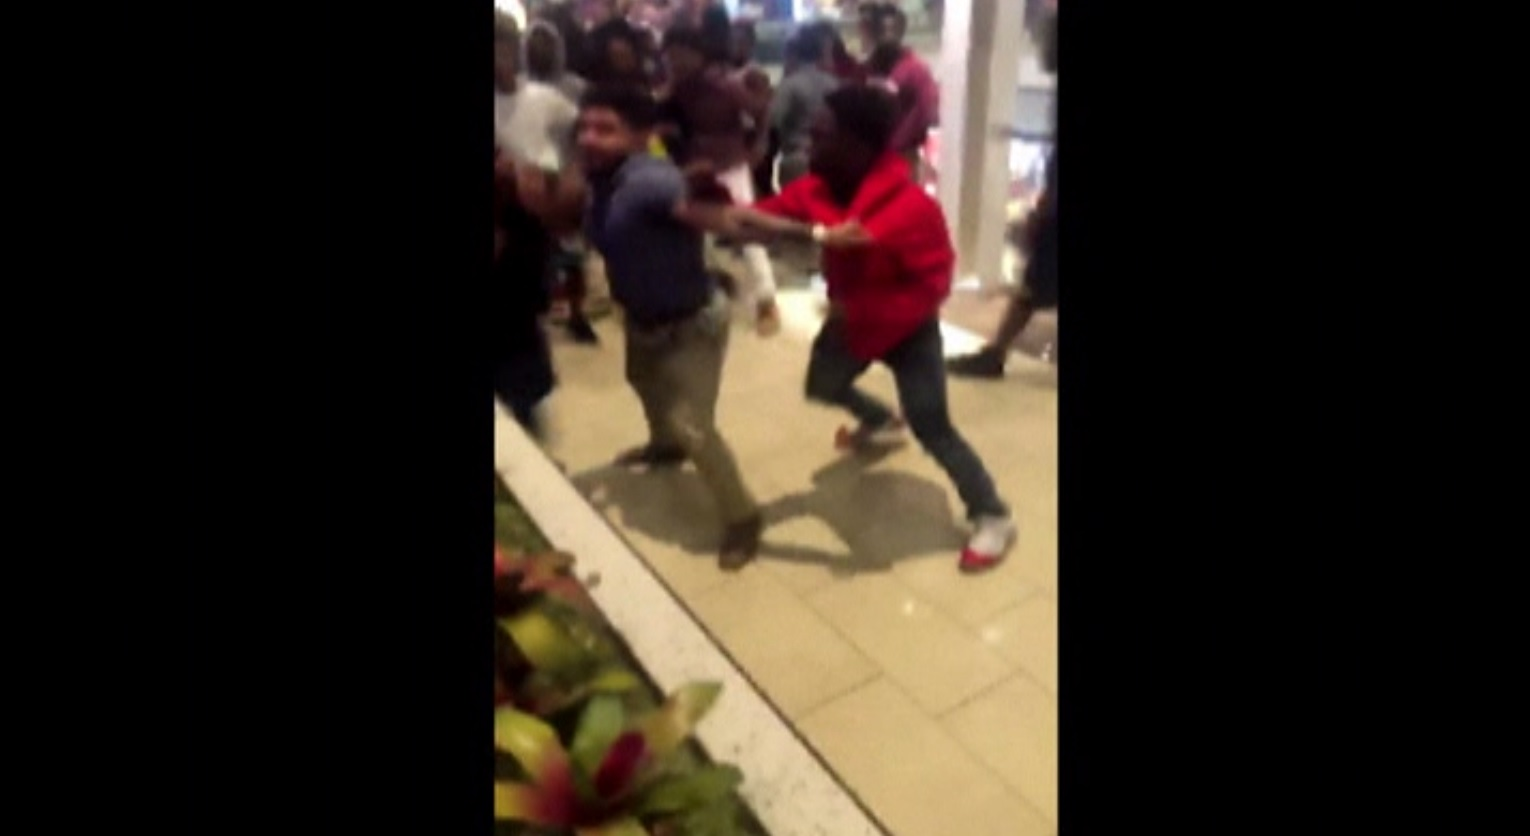 Violence at malls across U.S. may have been coordinated